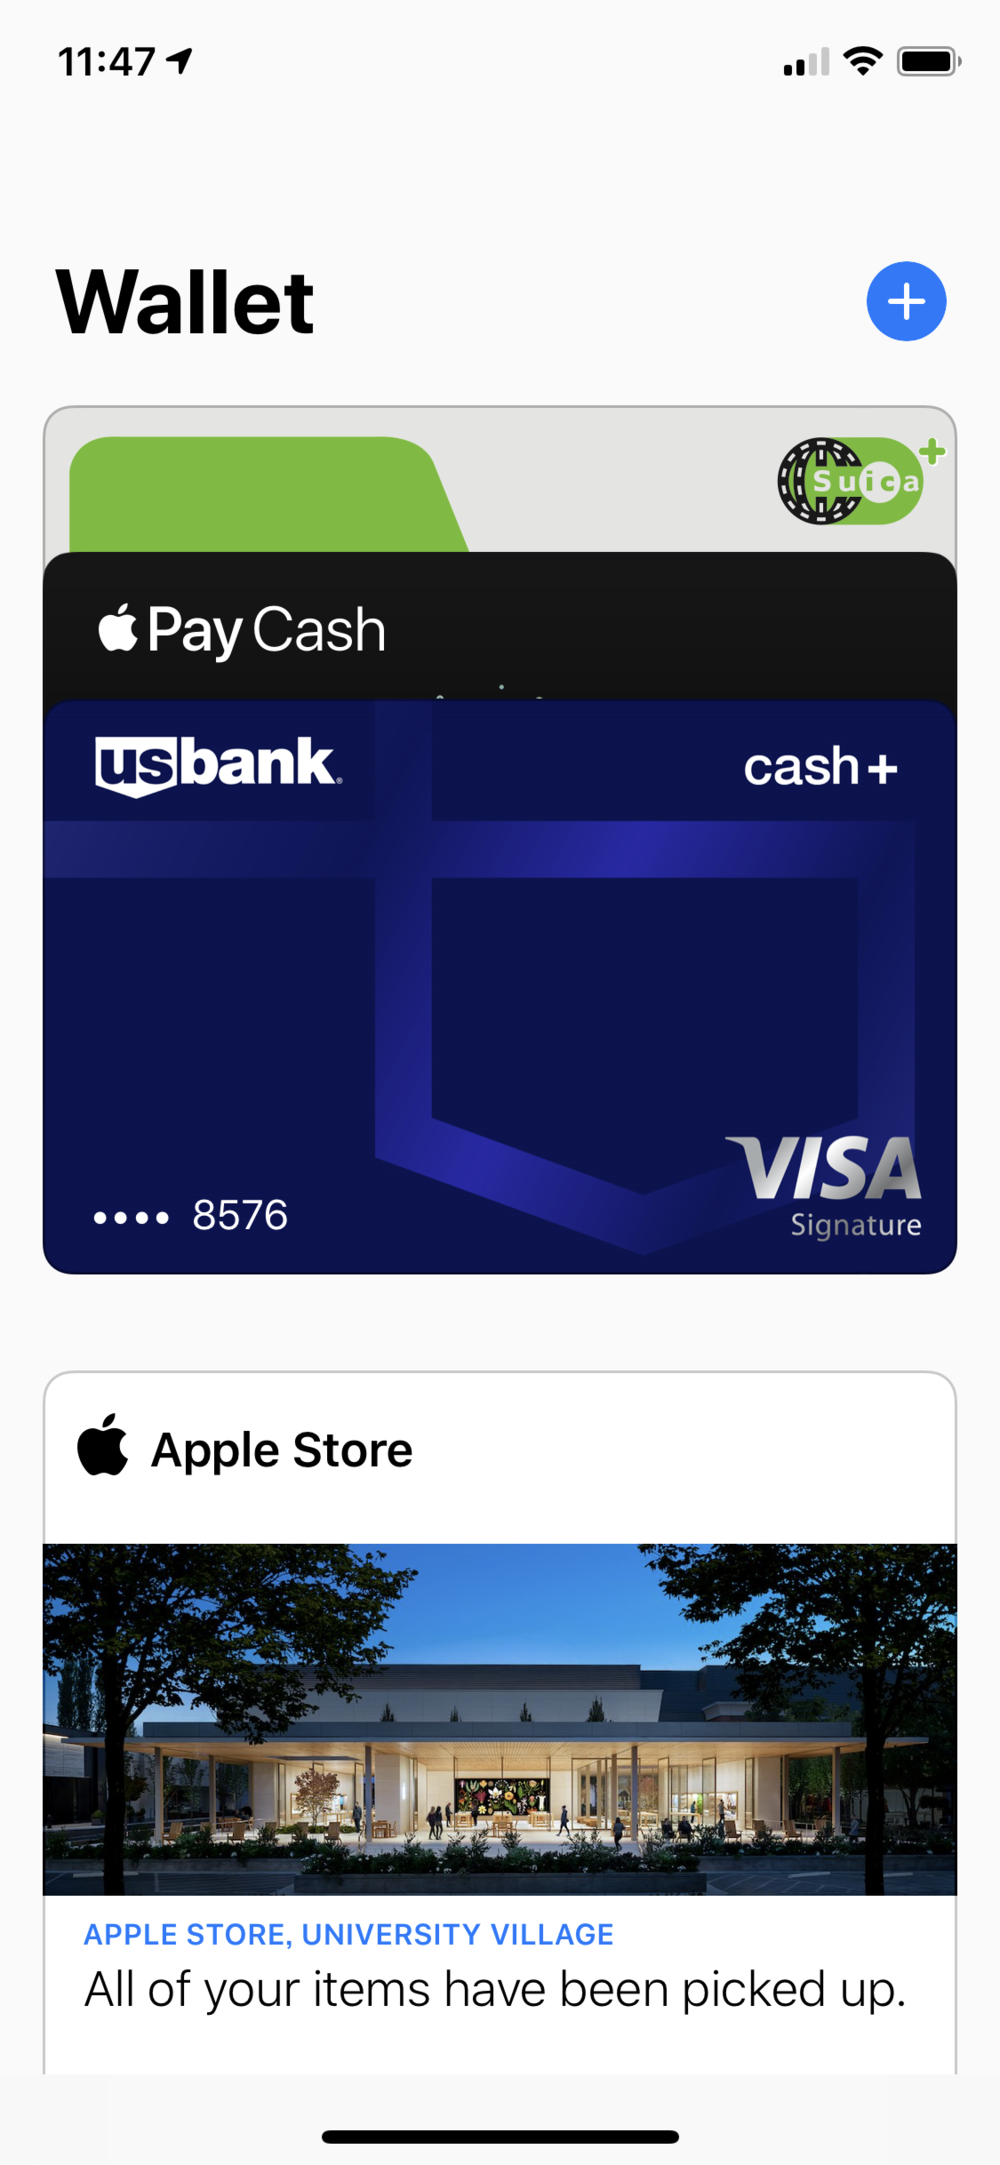 iOS Wallet features a top vs bottom separation of card types